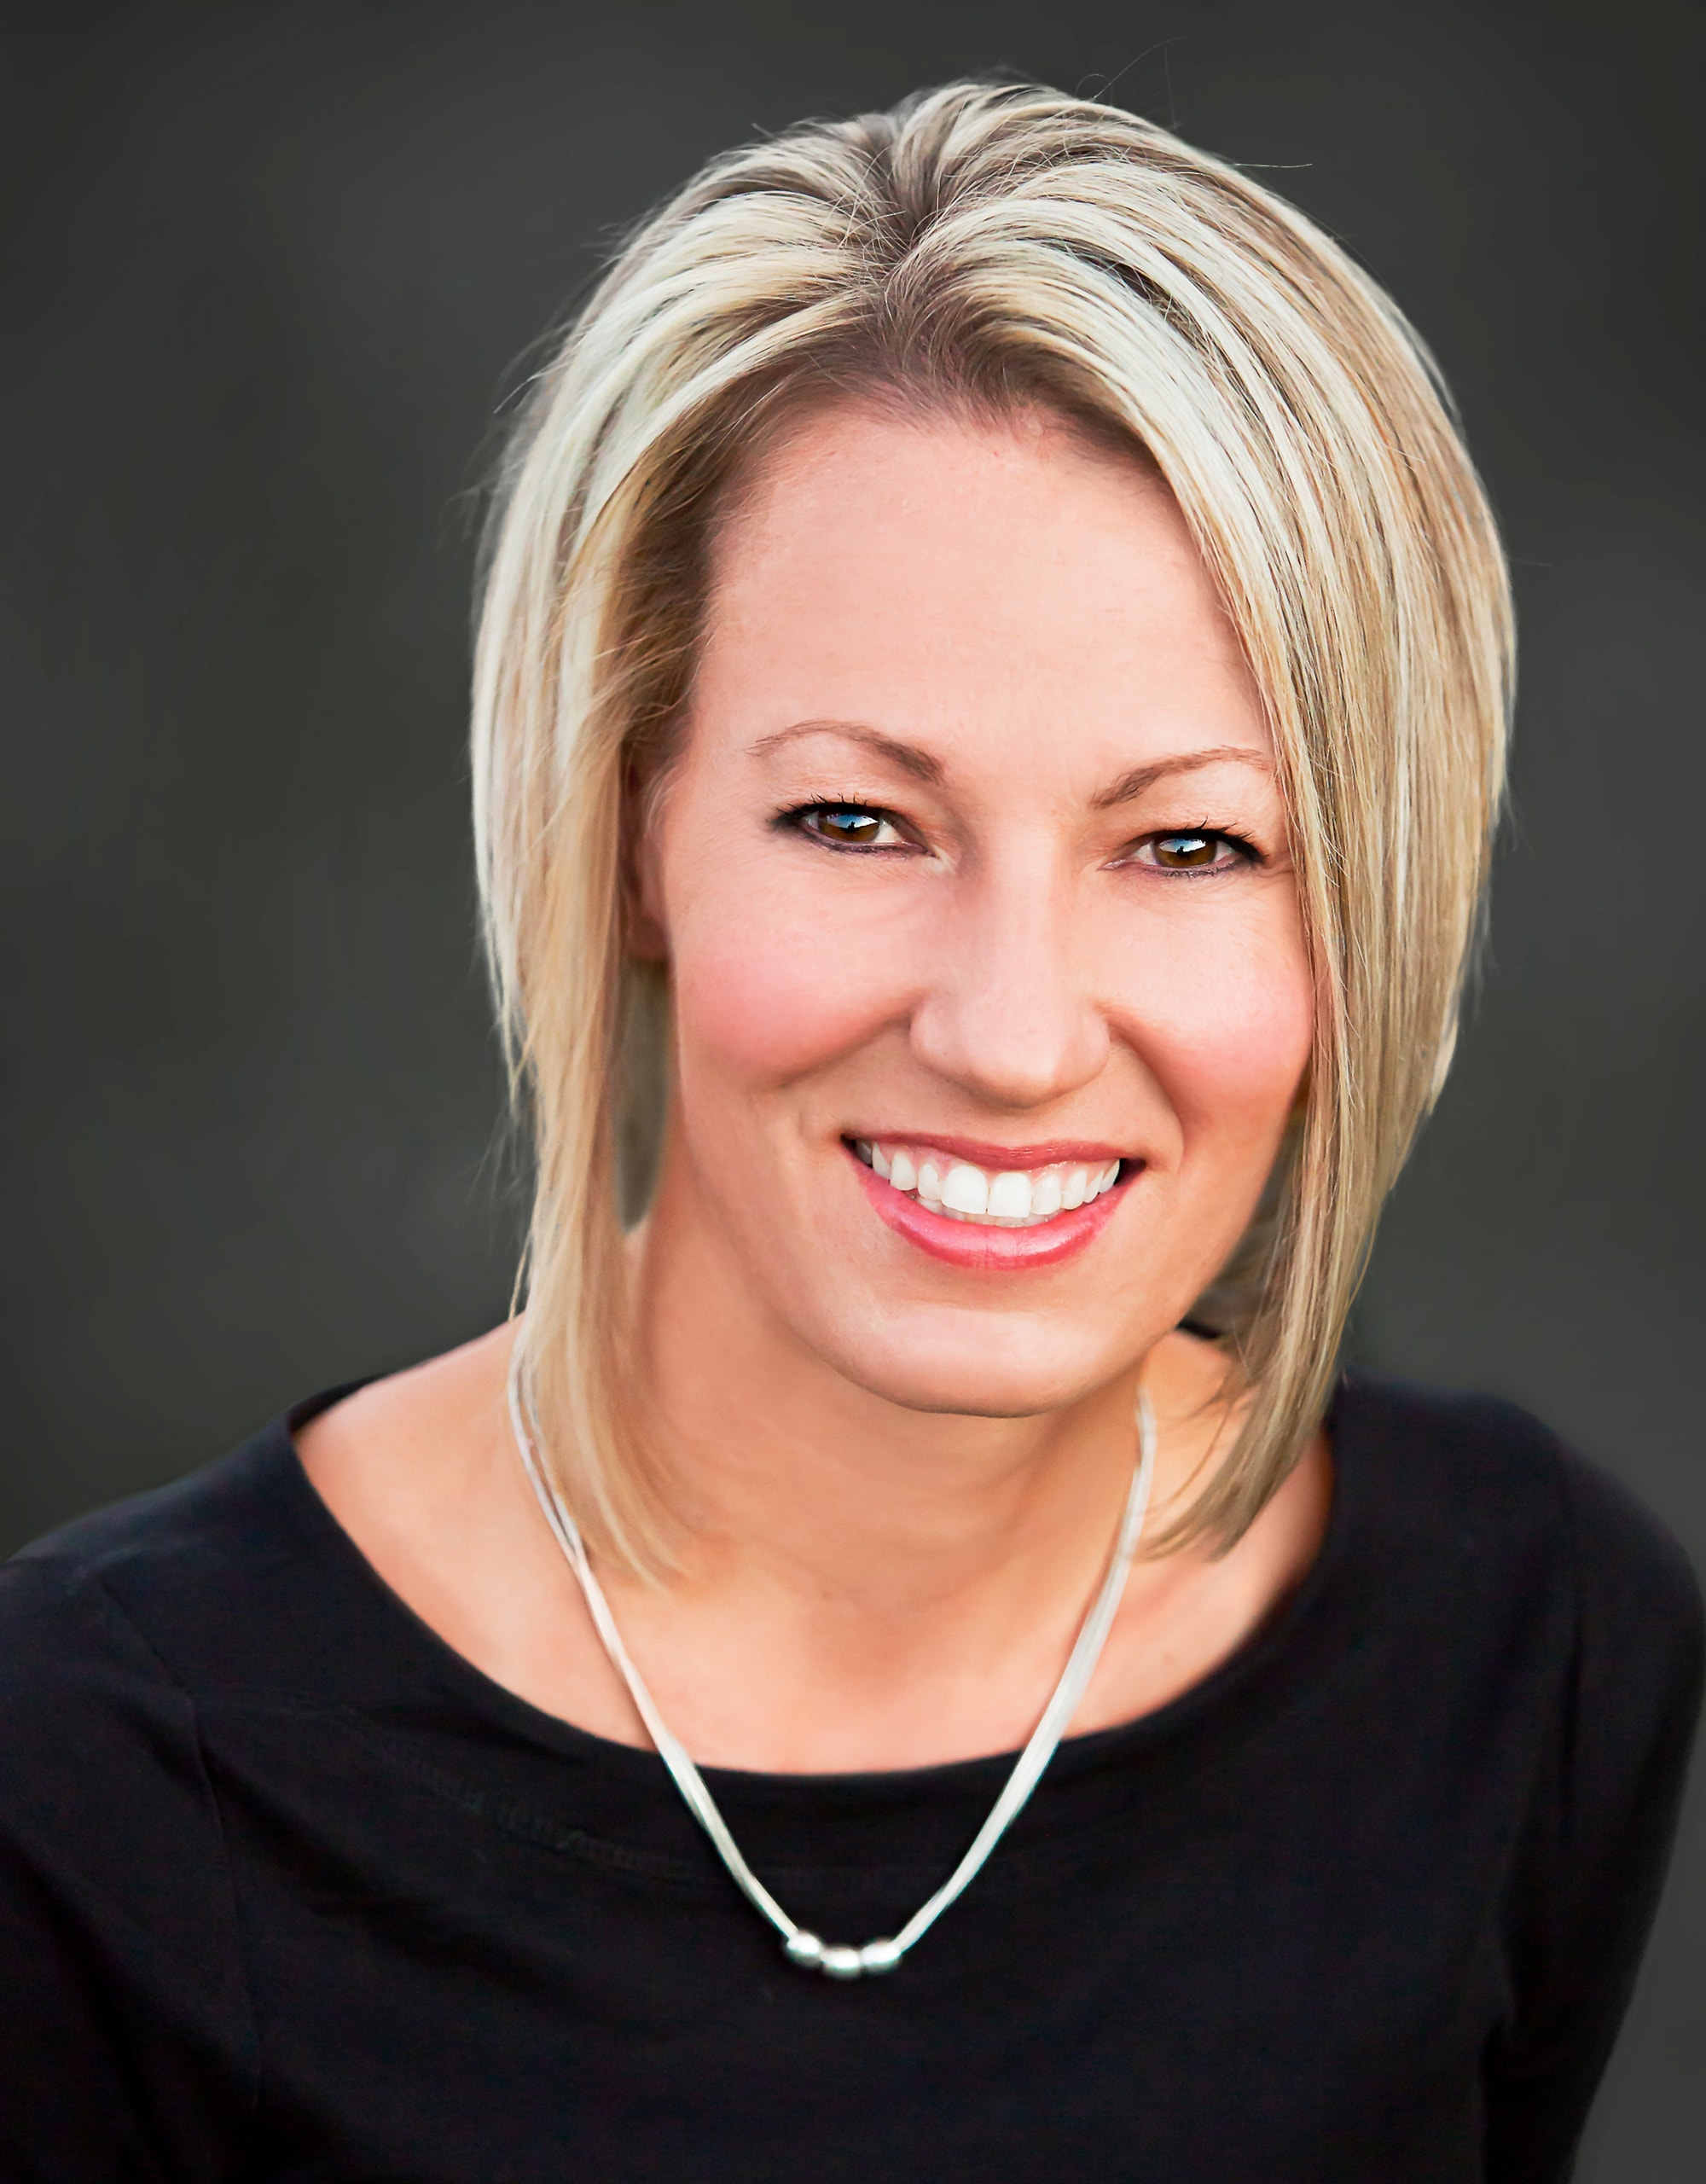 St George Realtor Angie Budge